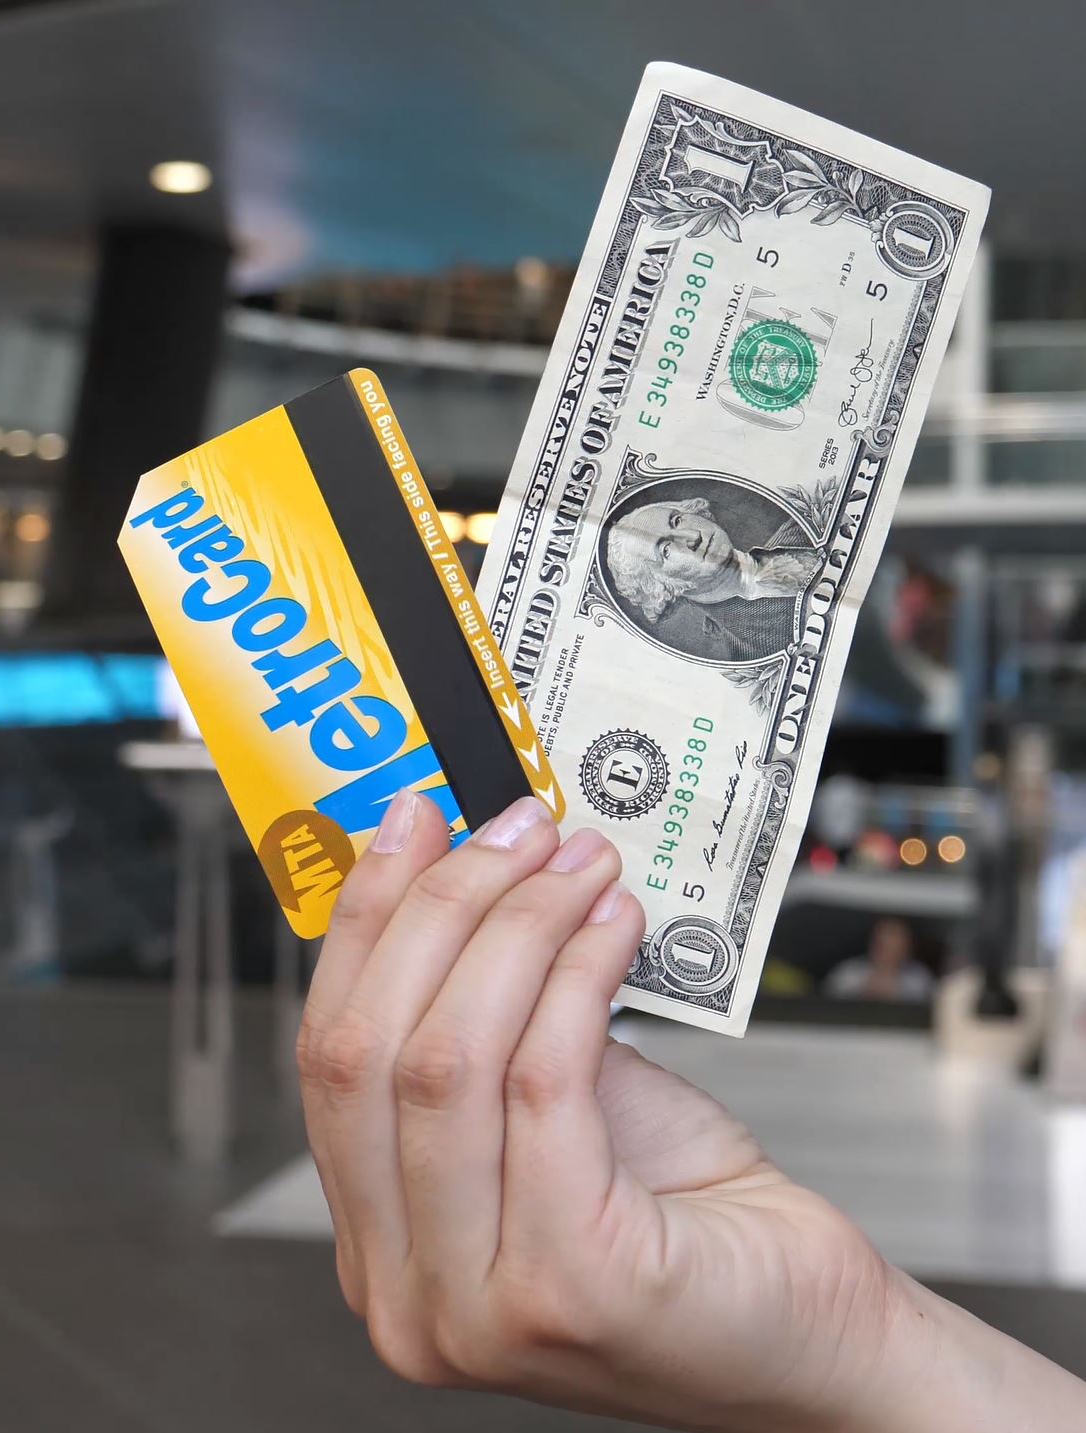 25 Things You Need to Know About the NYC Subway MetroCard